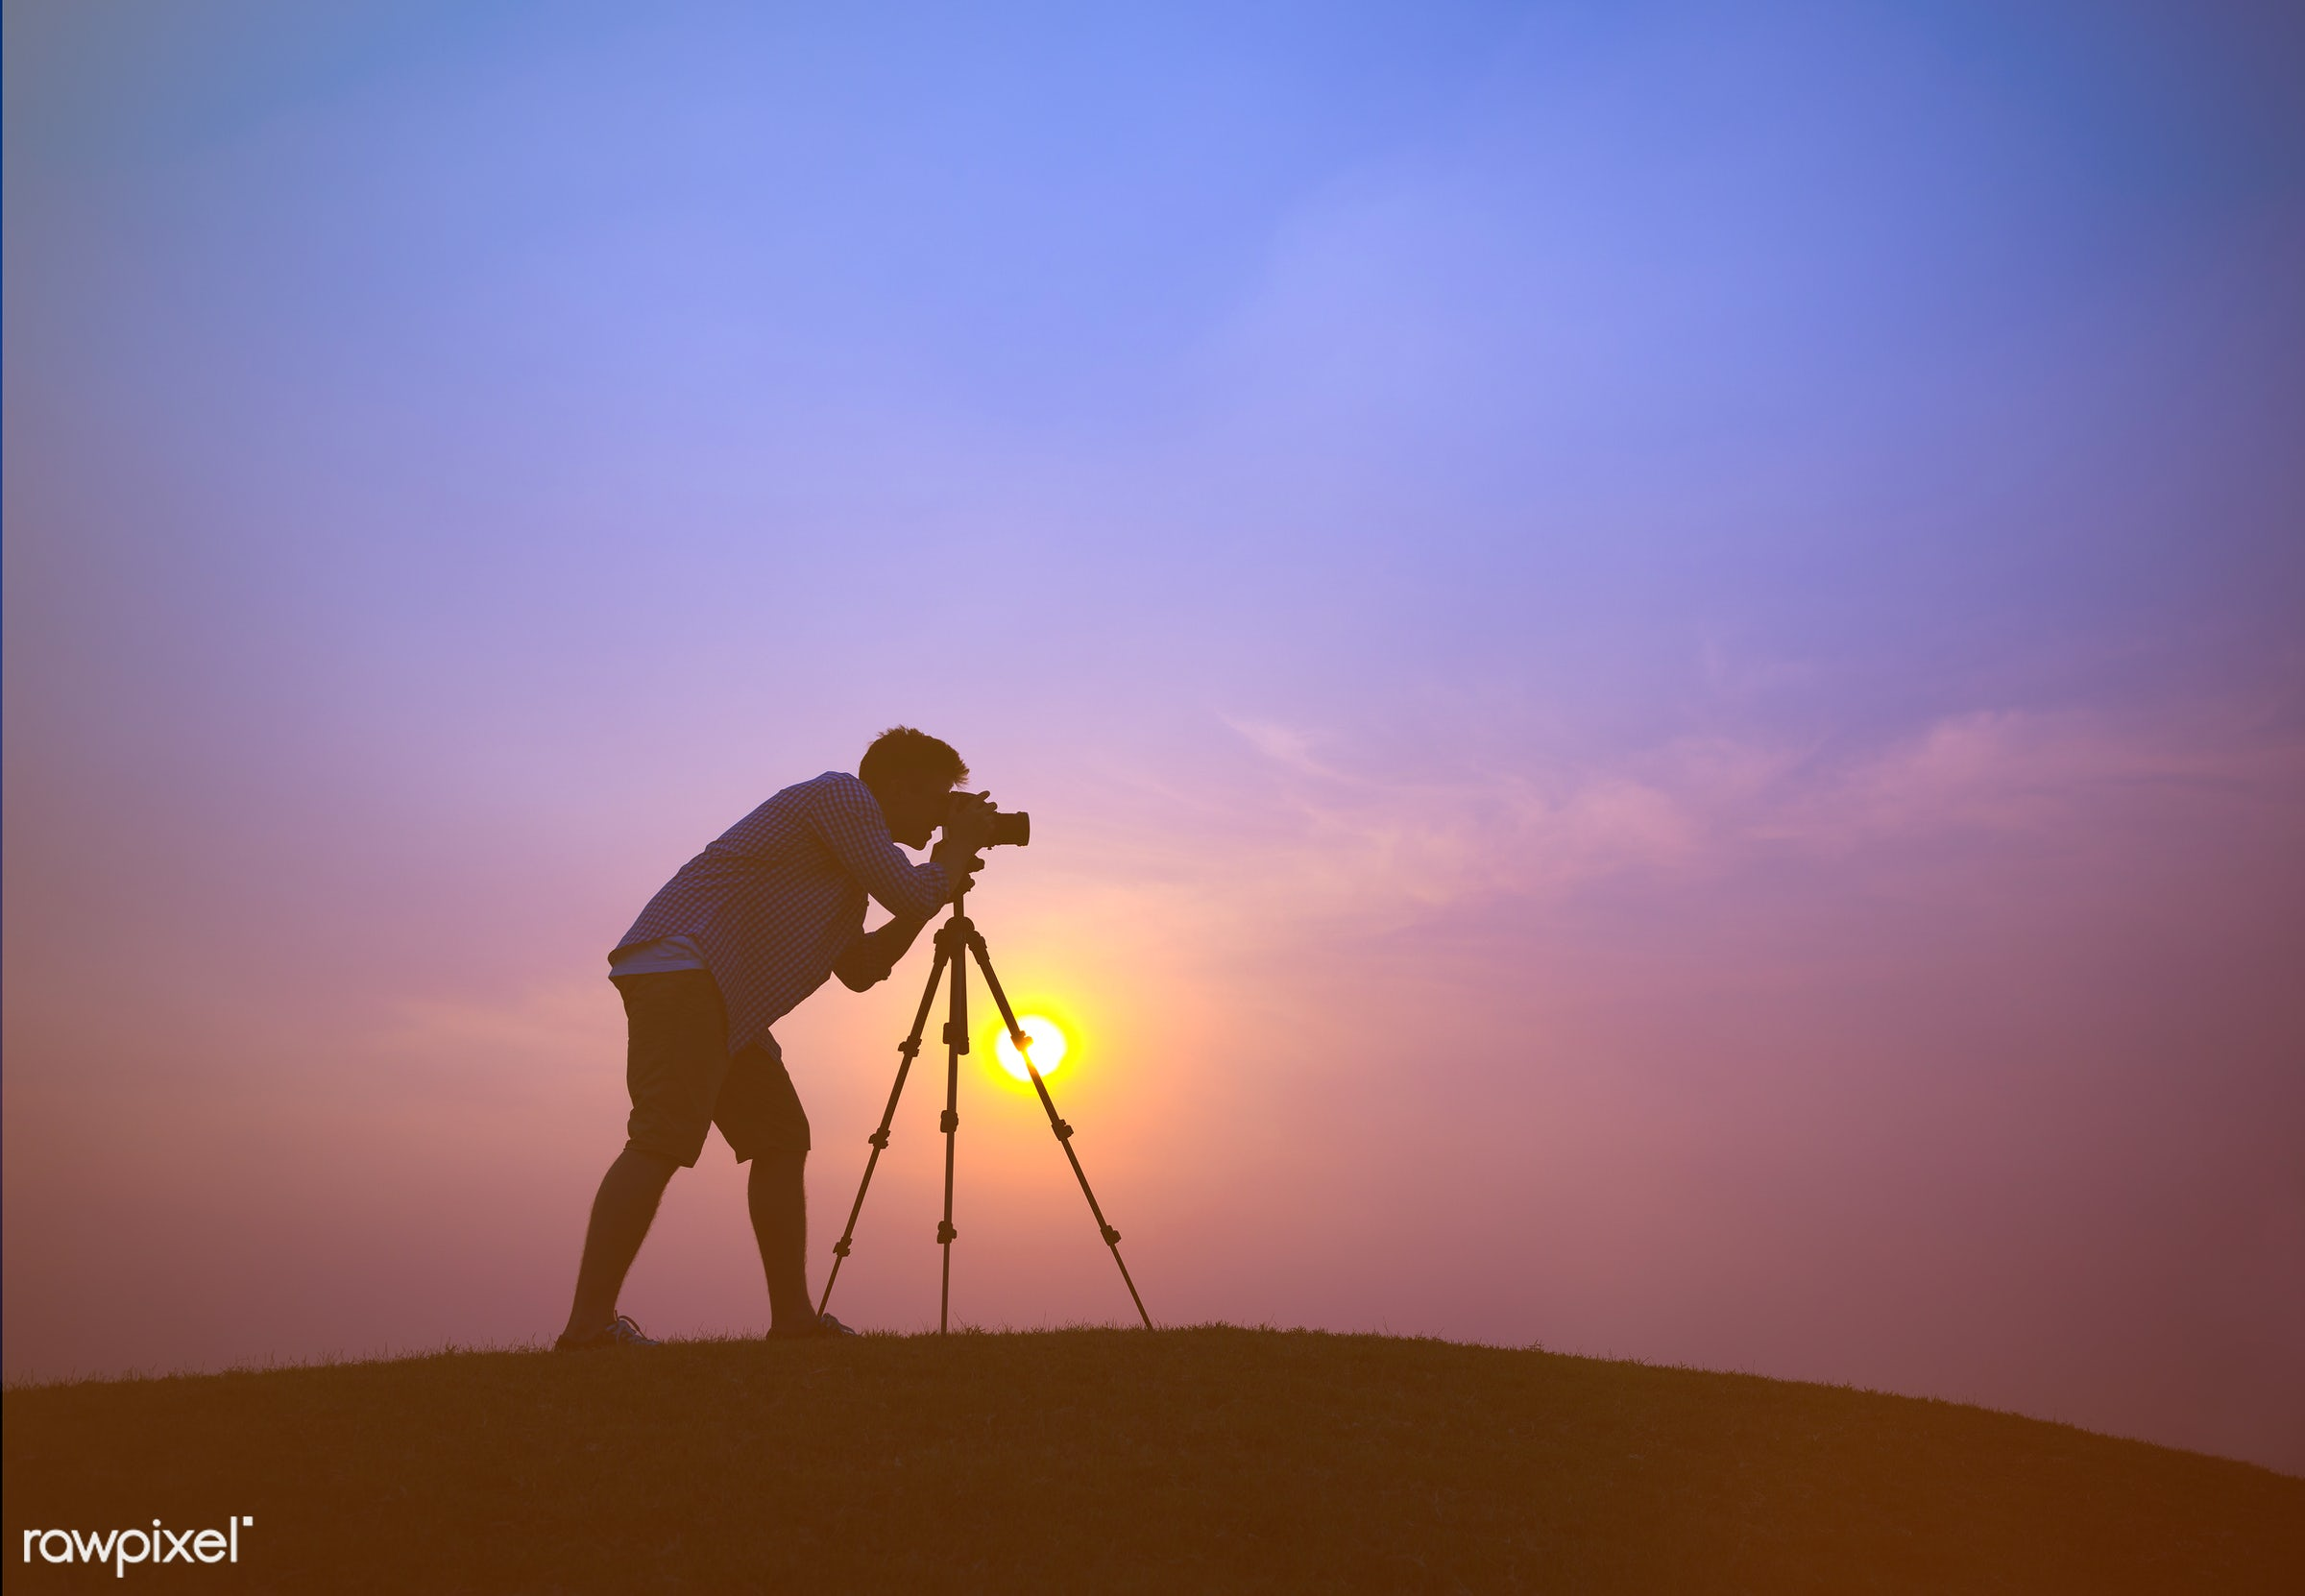 dusk, action, aspirations, beauty in nature, camera, cameraman, concepts and ideas, dawn, environment, evening, freelance,...